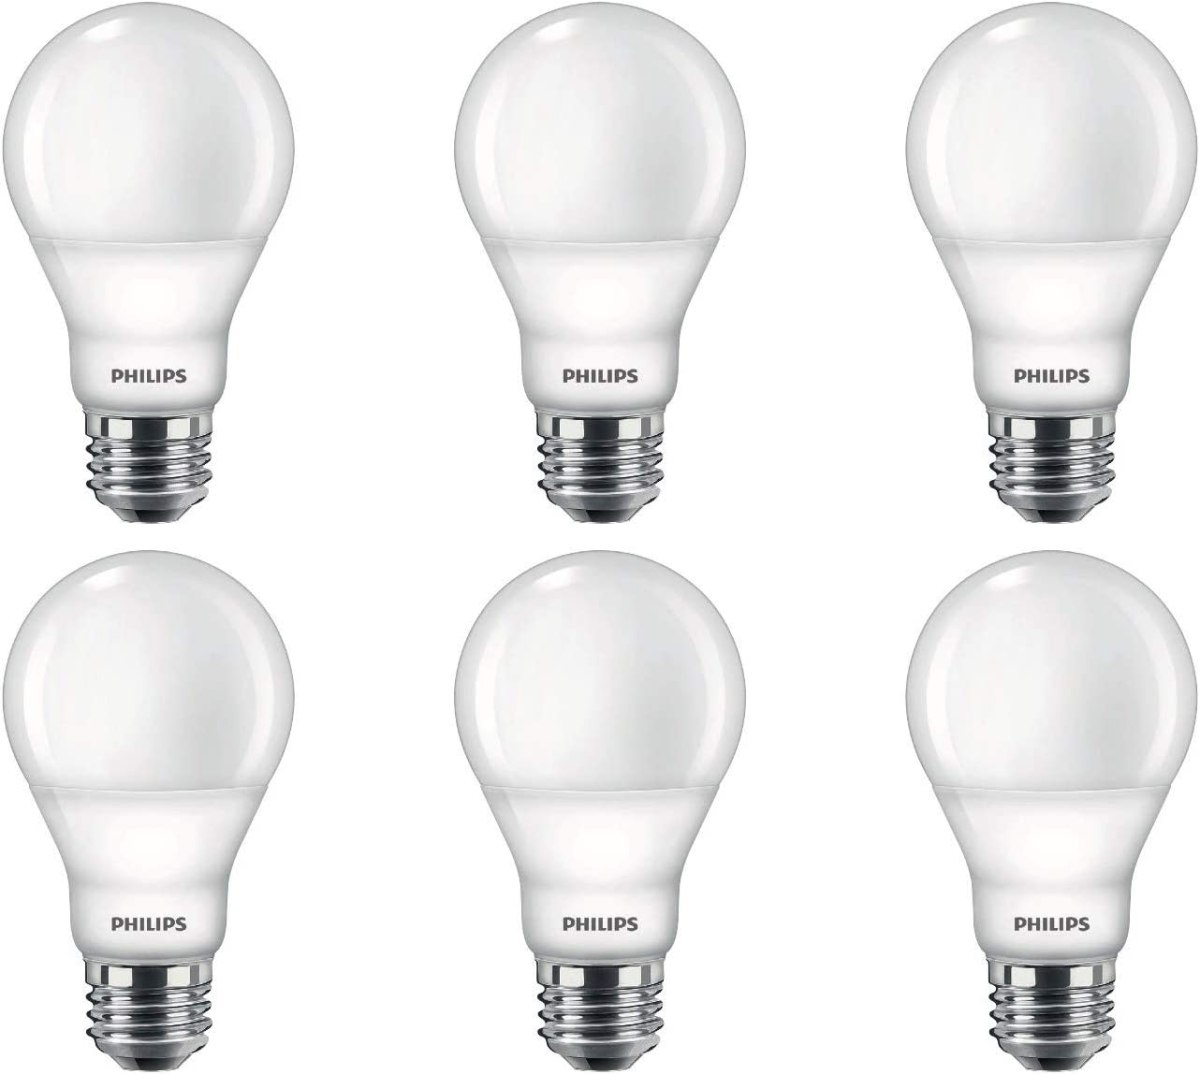 Philips LED Flicker-Free Frosted A19 Light Bulb